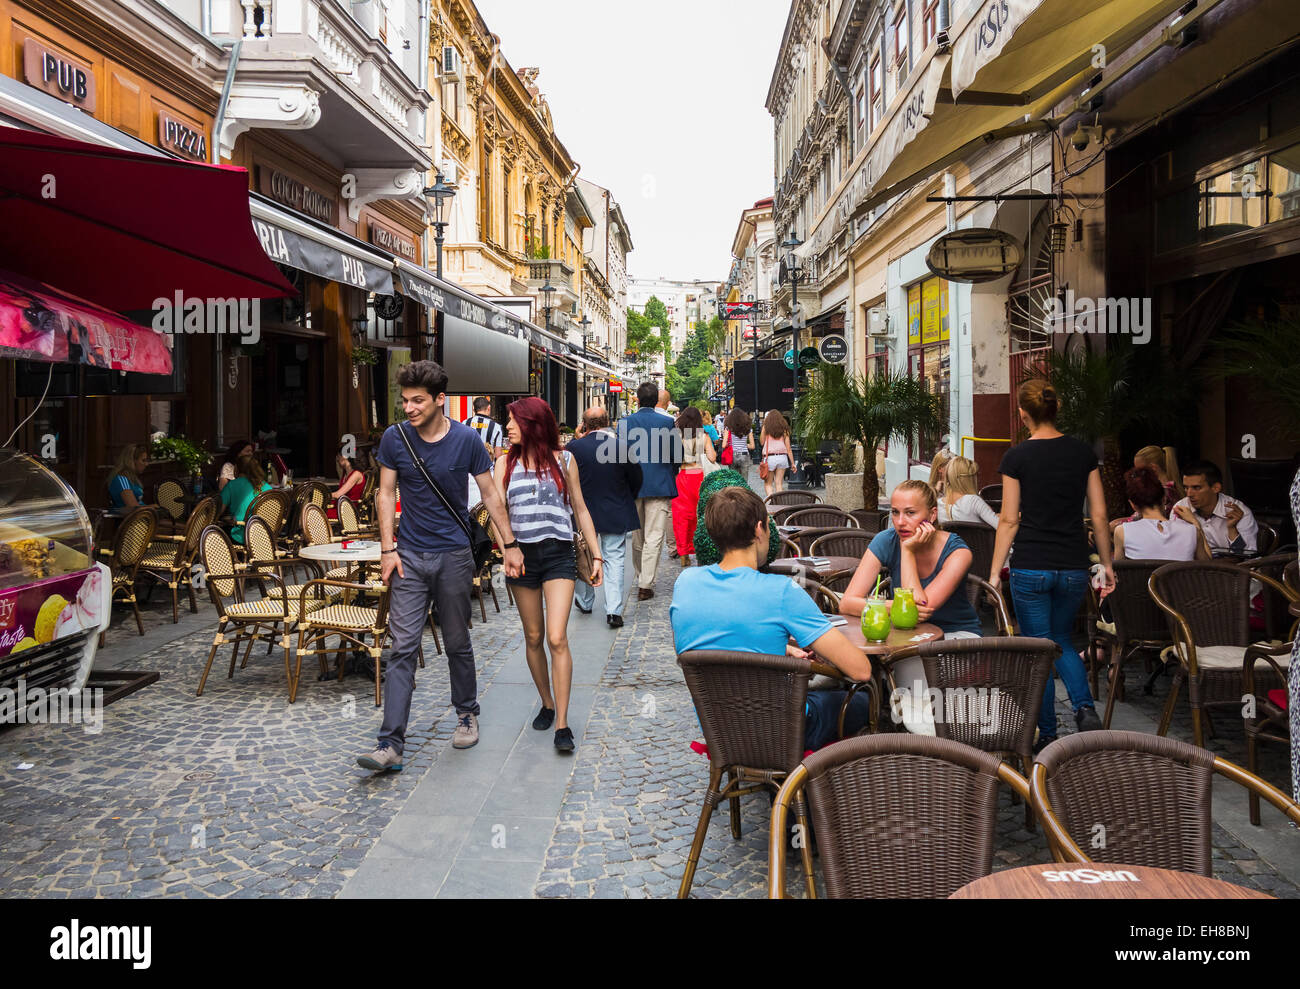 Bars and restaurants in Old Town, Centru Vechi, Bucharest, Romania, Europe - Stock Image